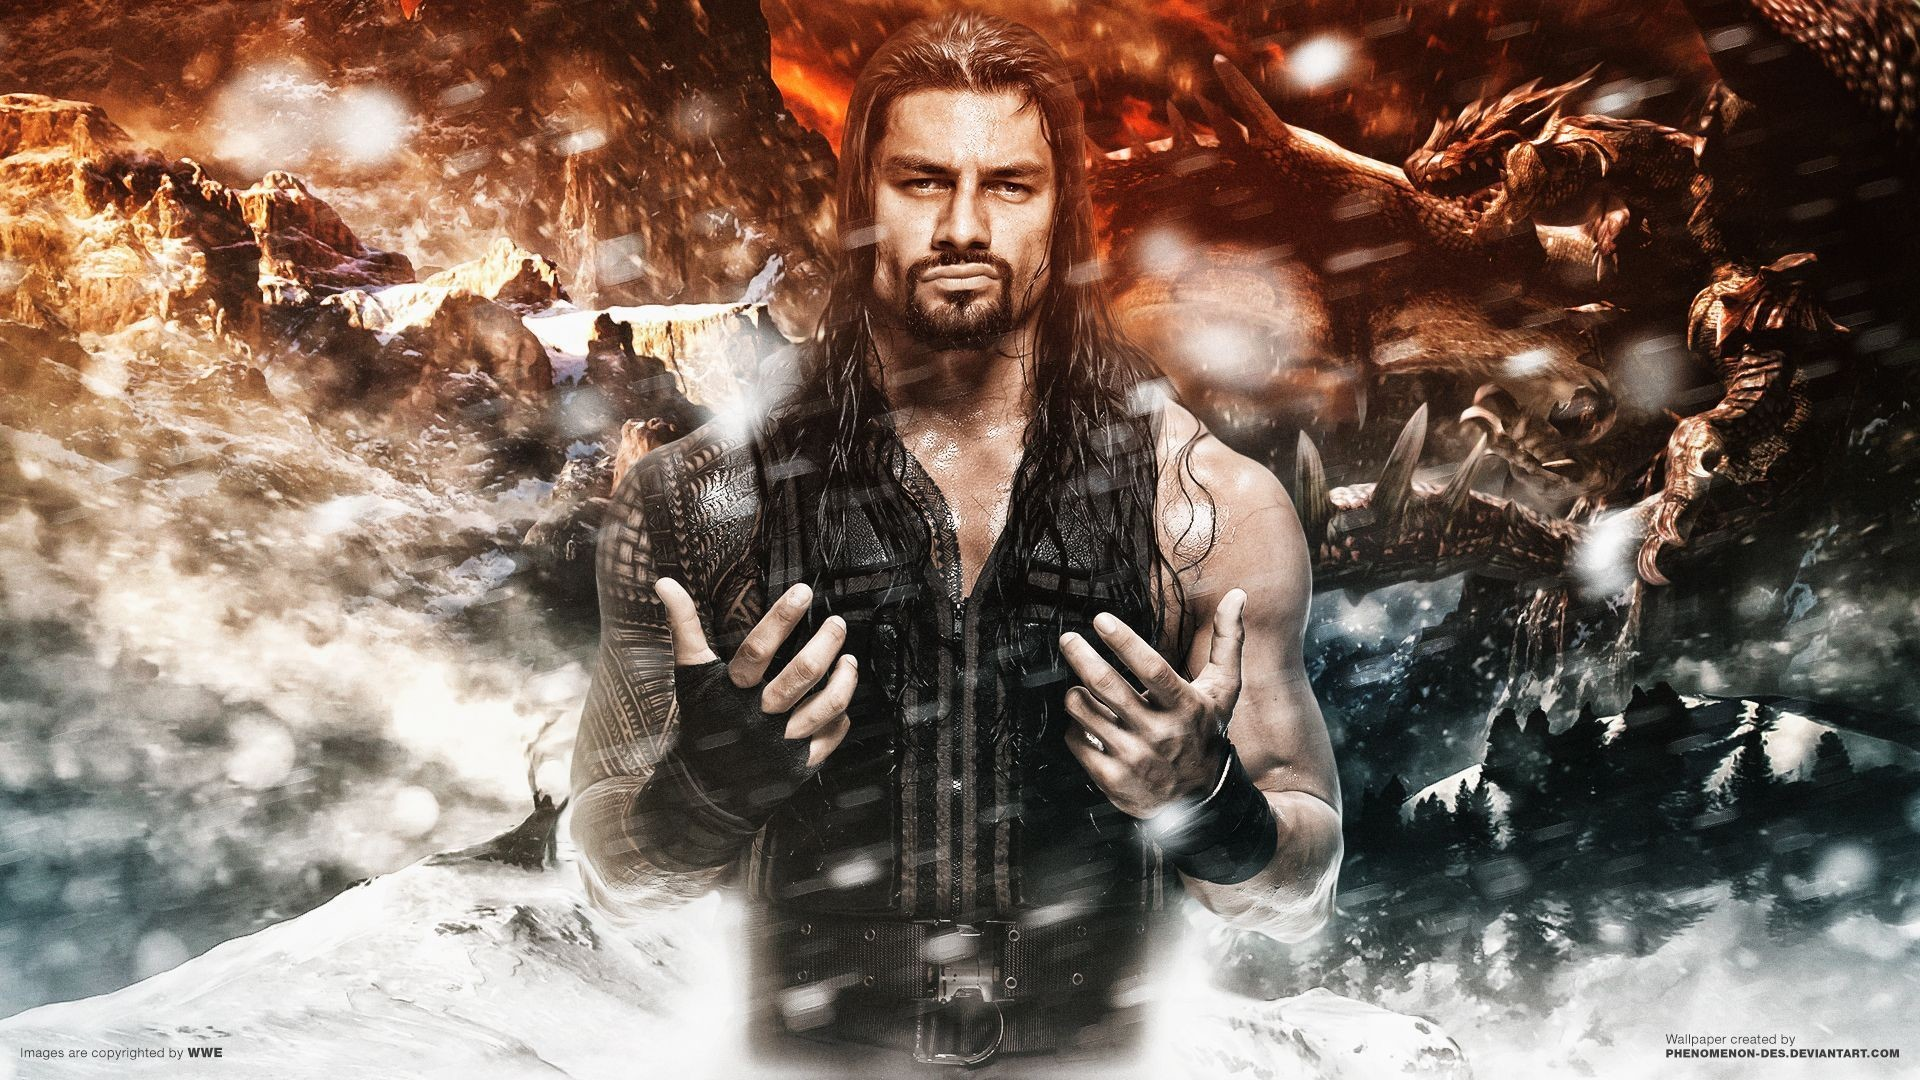 Res: 1920x1080, Roman Reigns Wallpaper, by Darby Koons